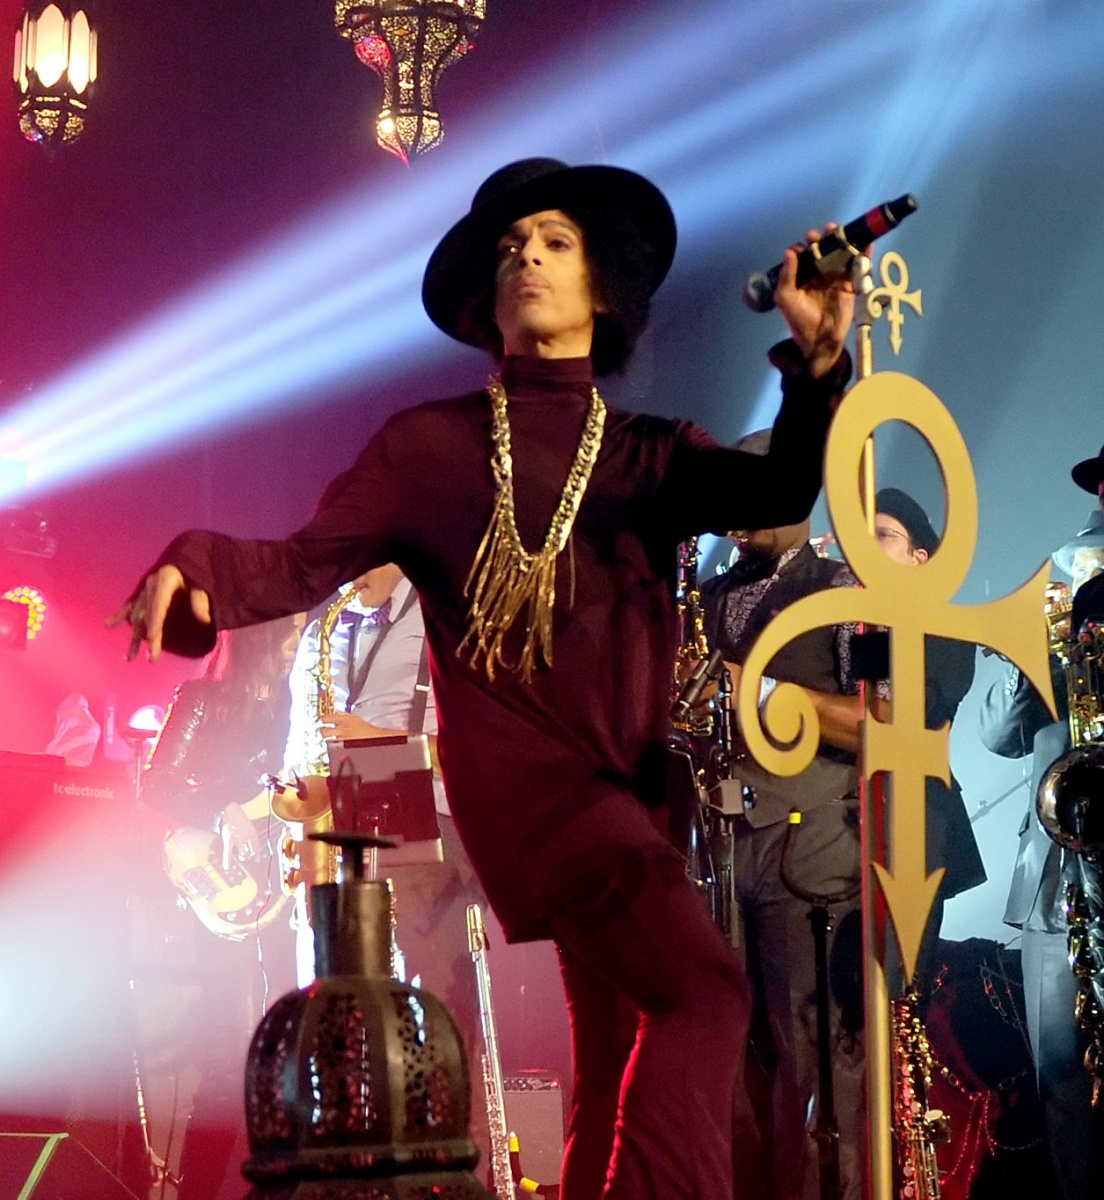 Prince addicted to prescription drugs: reports